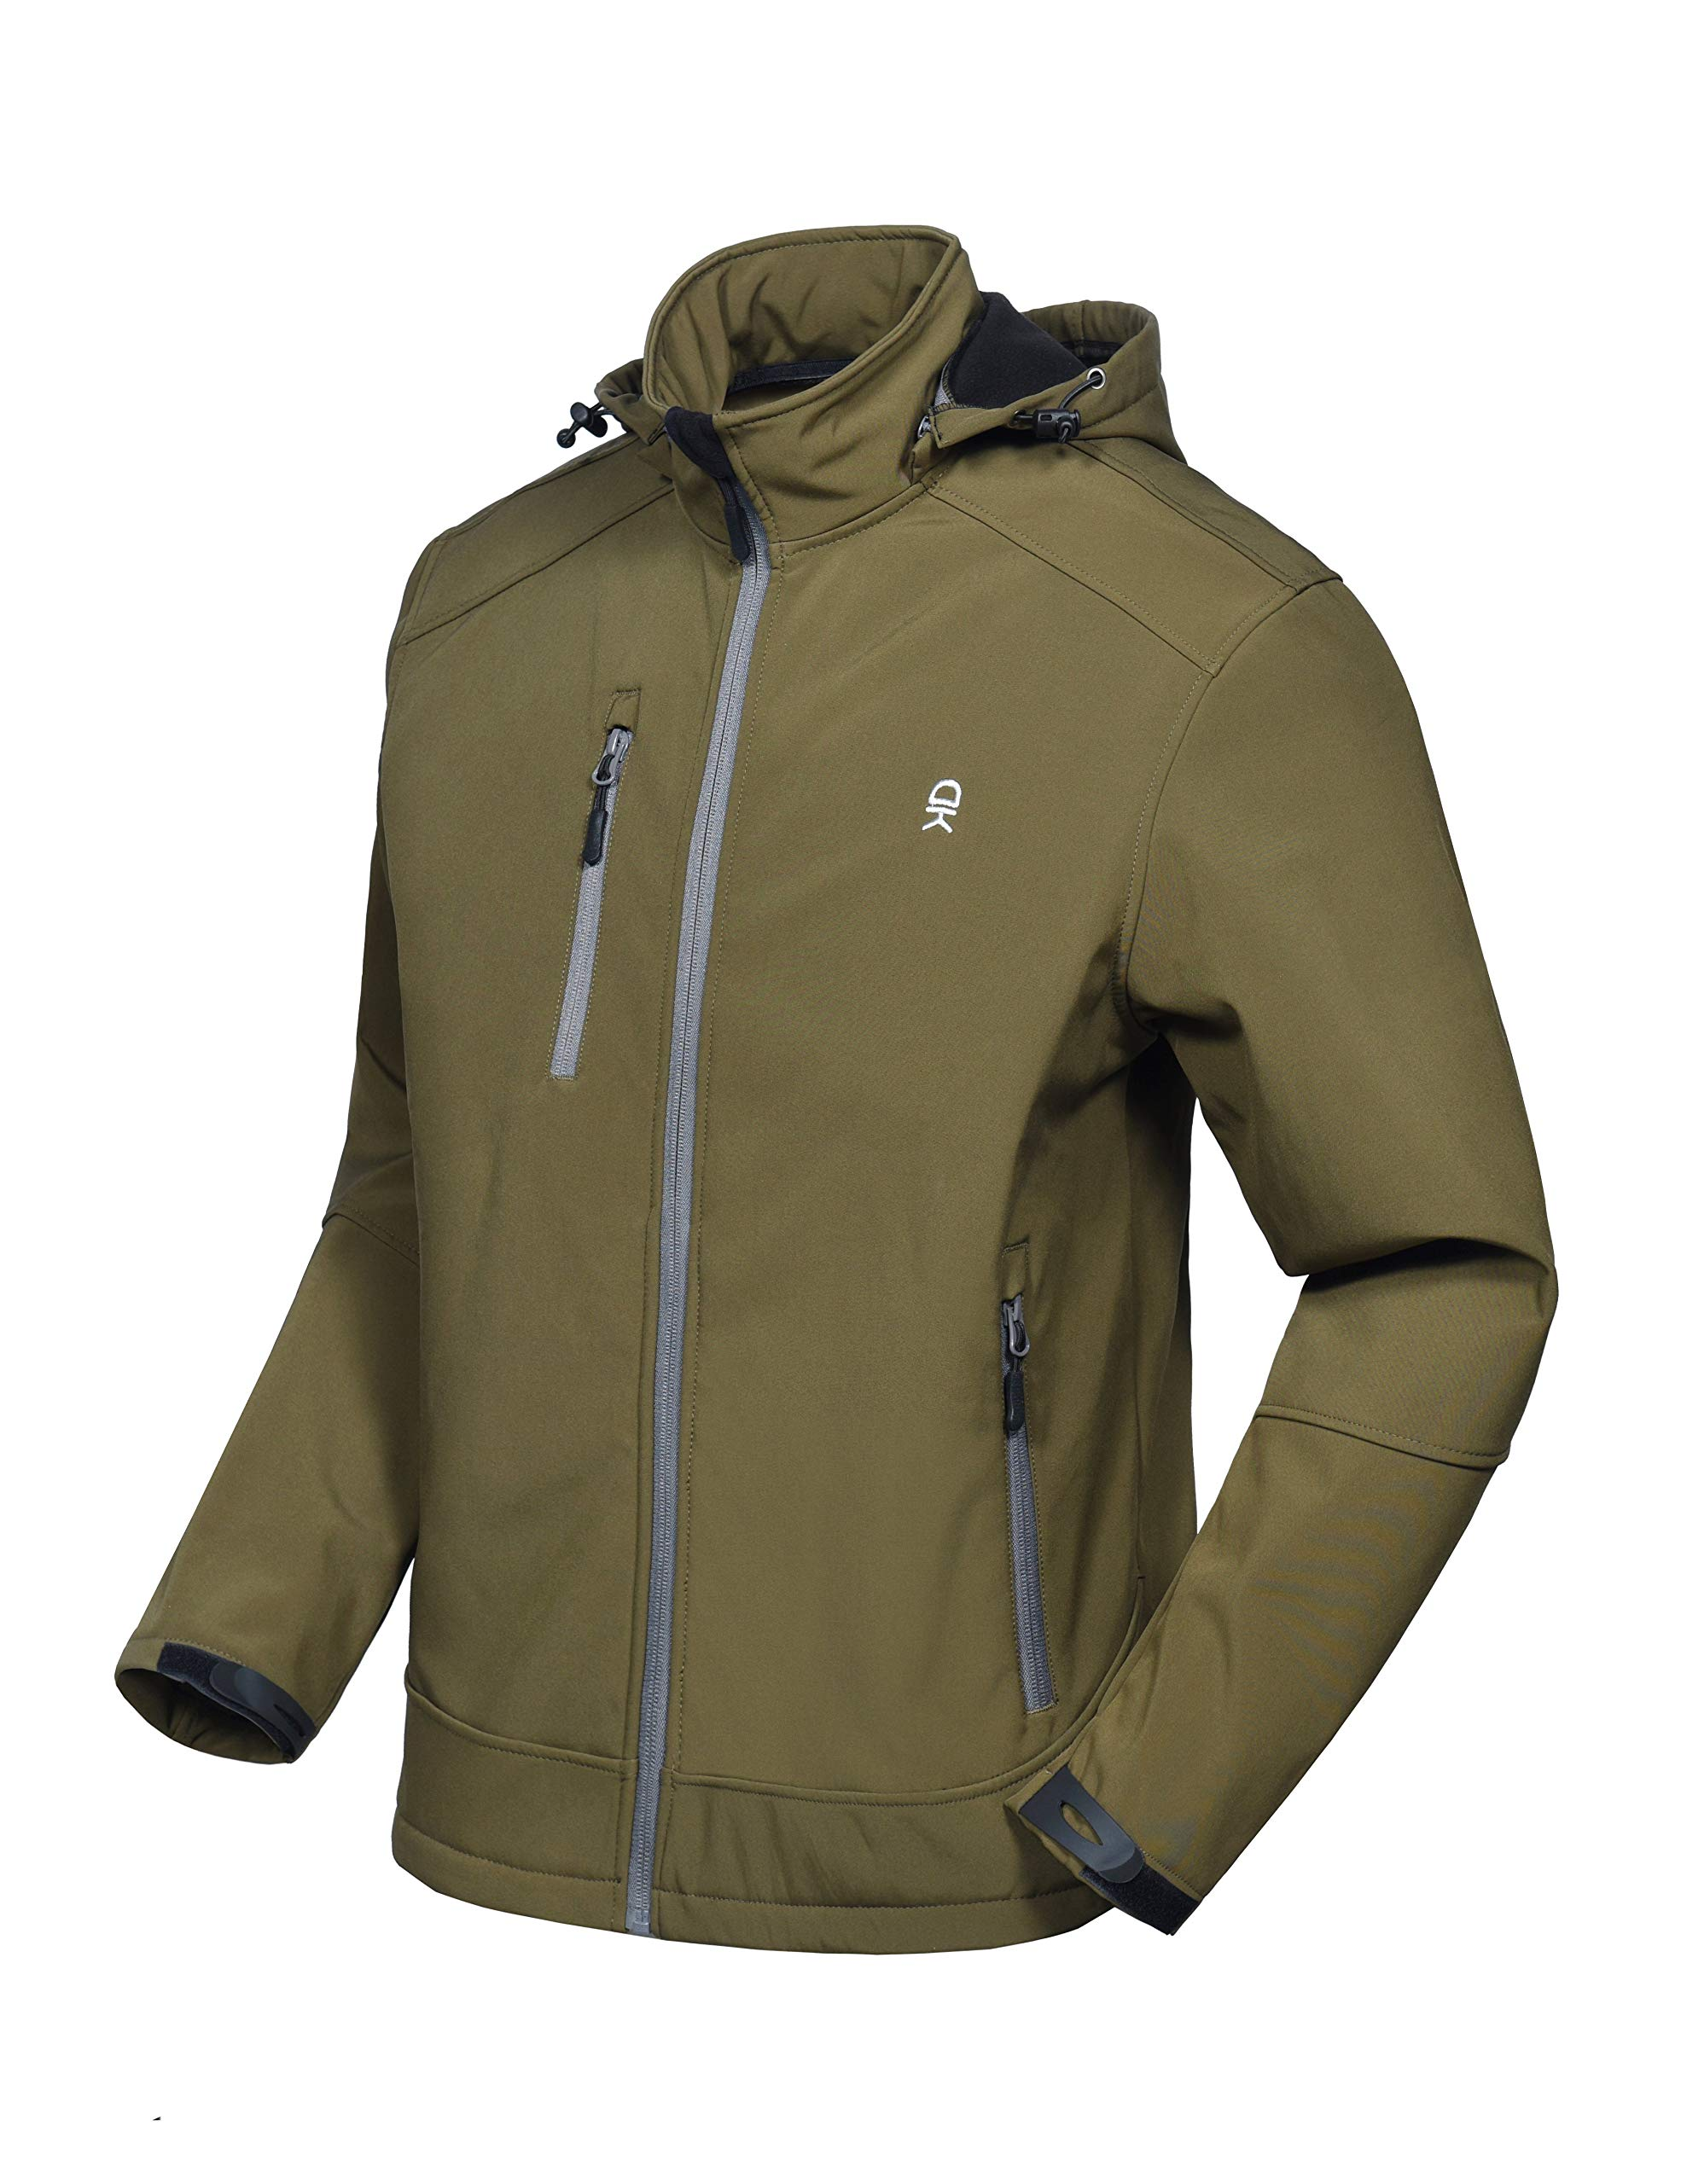 Little Donkey Andy Men's Softshell Jacket with Removable Hood, Fleece Lined and Water Repellent Olive Size L by Little Donkey Andy